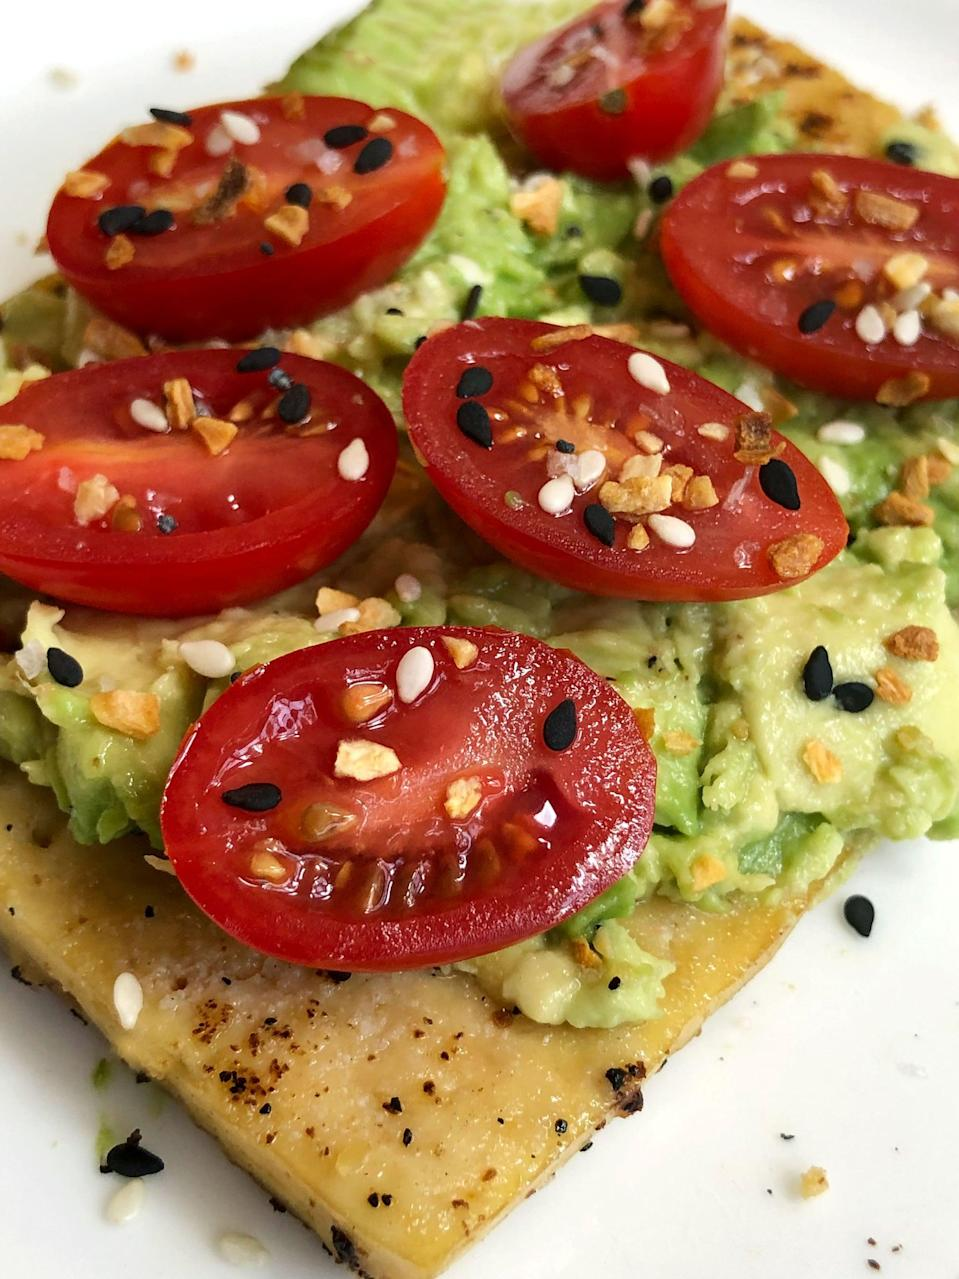 "<p>Now you can enjoy your beloved avocado toast and still follow a low-carb diet. This recipe swaps traditional bread with superfirm tofu.</p> <p><strong>Calories:</strong> 362 (for two slices)<br> <strong>Protein:</strong> 25 grams</p> <p><strong>Get the recipe:</strong> <a href=""https://www.popsugar.com/fitness/Low-Carb-Tofu-Avocado-Toast-46112248"" class=""link rapid-noclick-resp"" rel=""nofollow noopener"" target=""_blank"" data-ylk=""slk:tofu avocado &quot;toast&quot;"">tofu avocado ""toast""</a></p>"